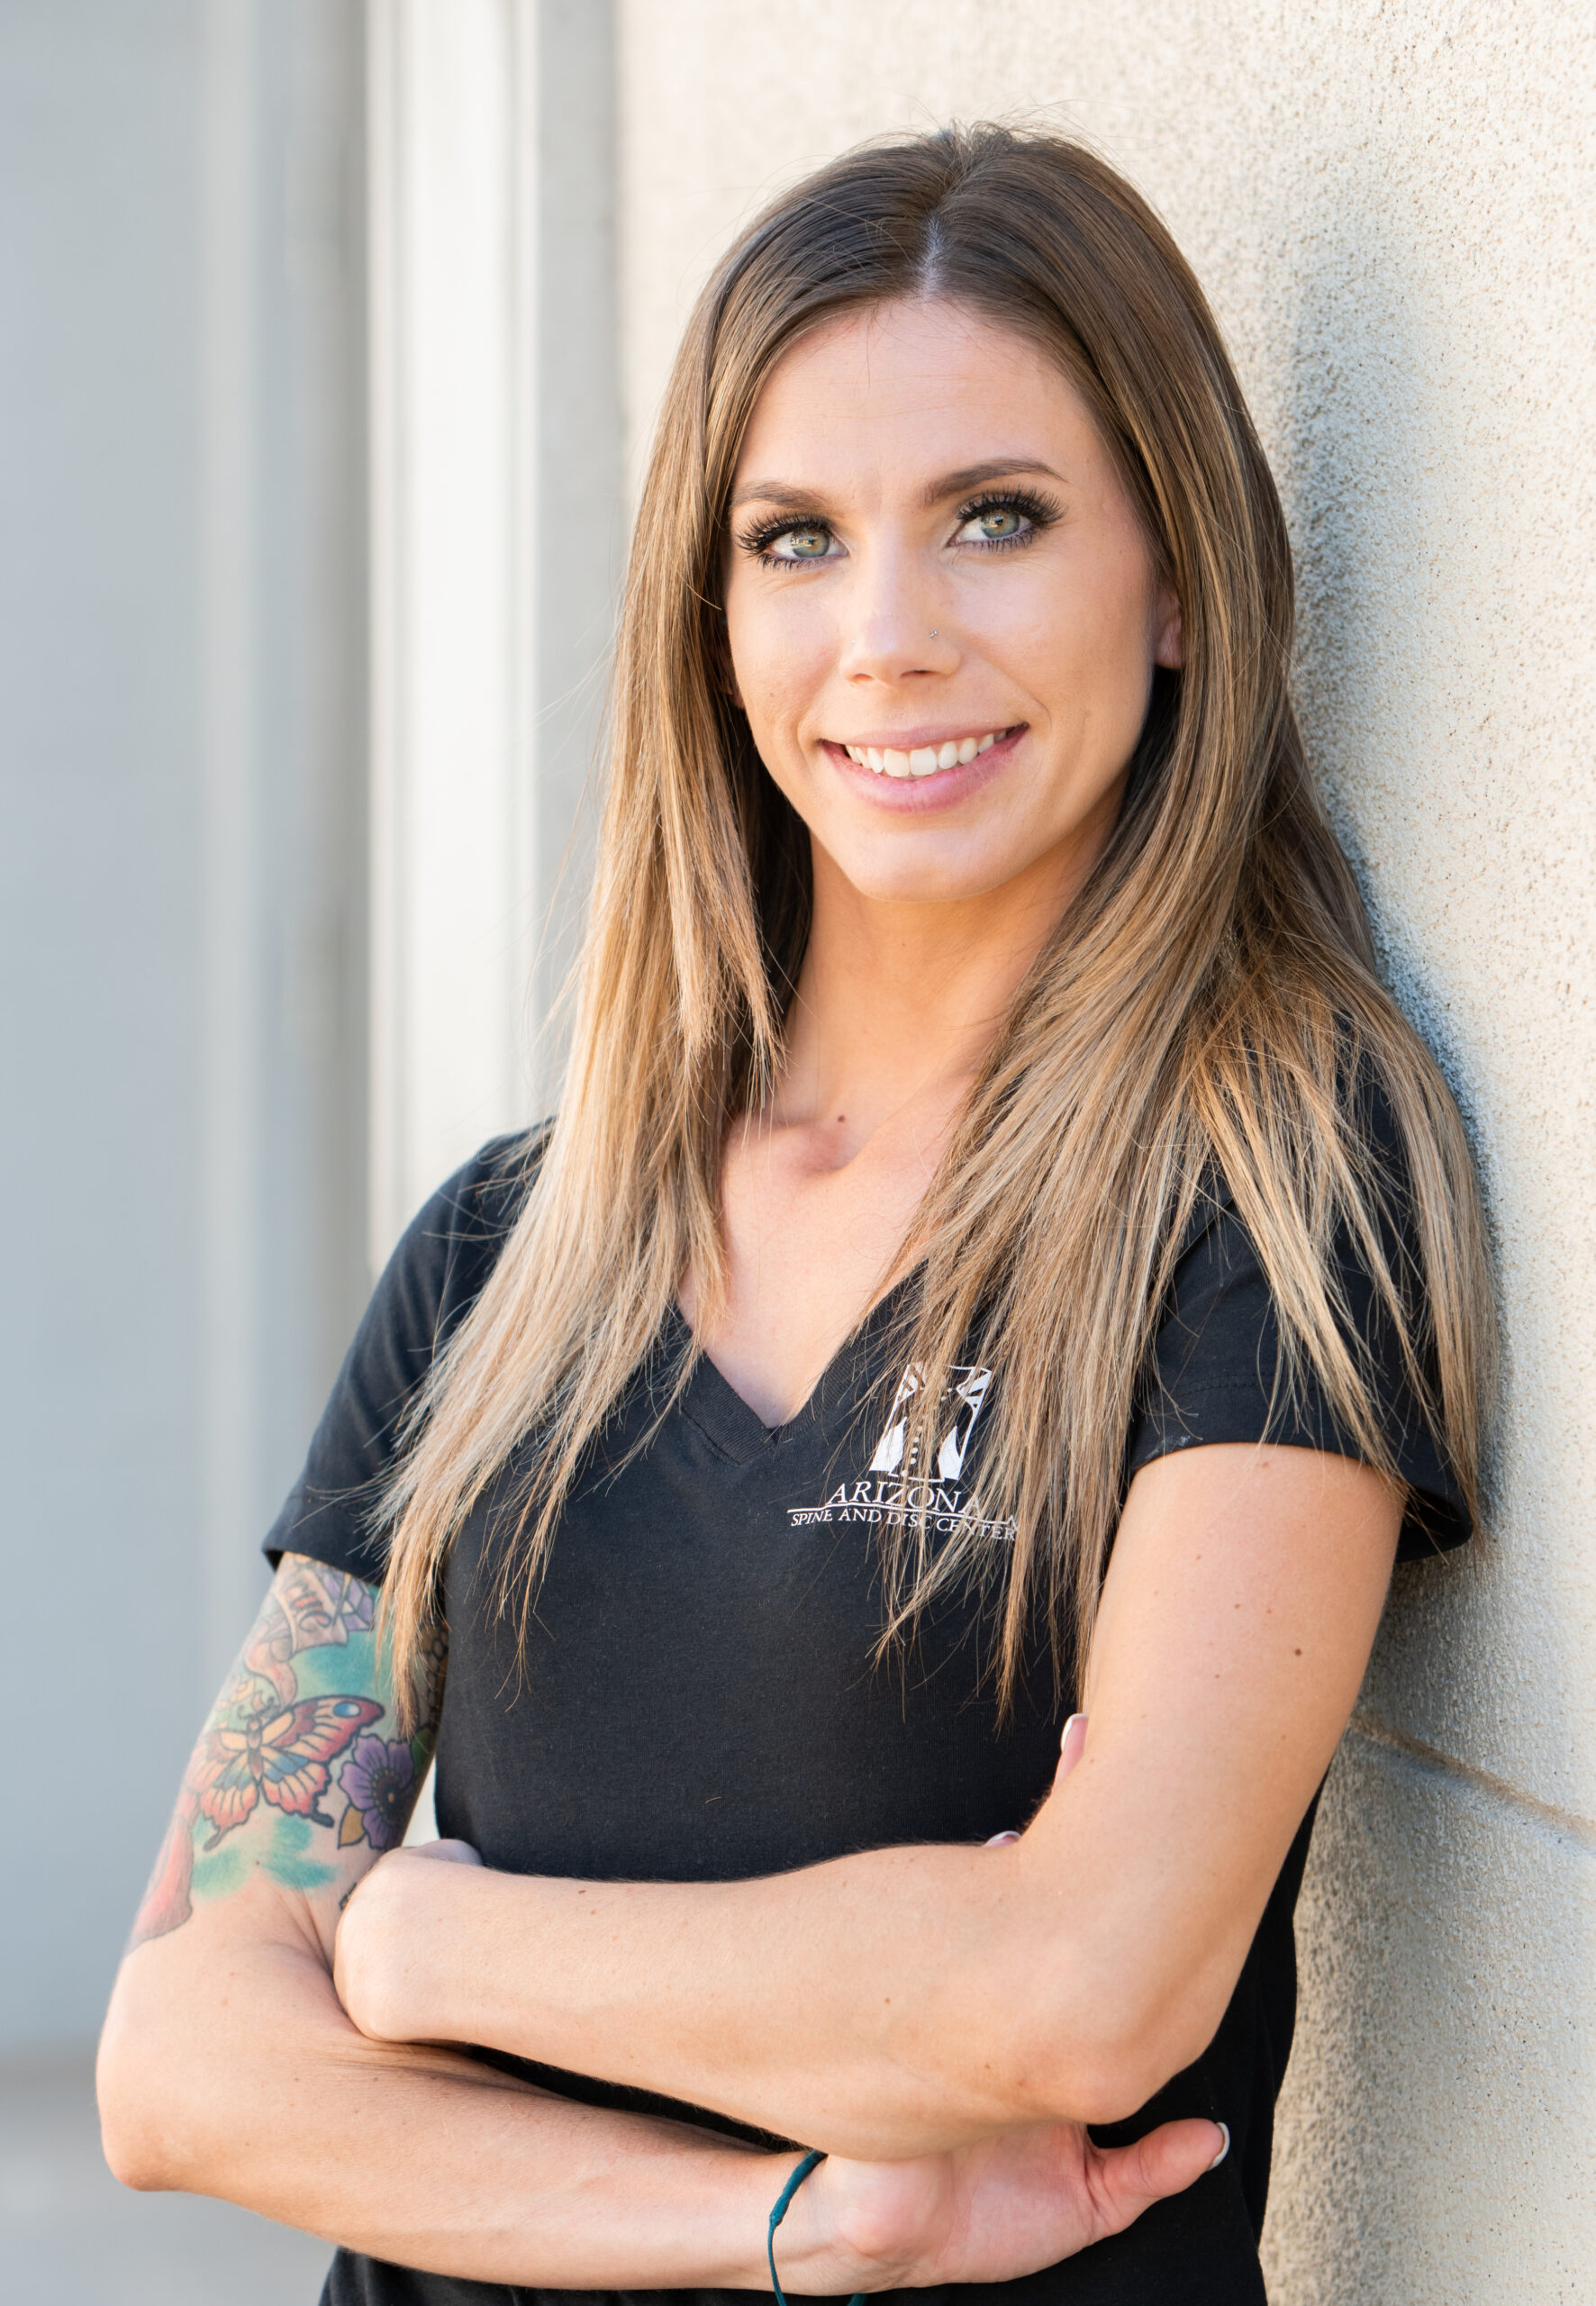 Heidi Sauerland – Massage Therapist and Chiropractic Assistant